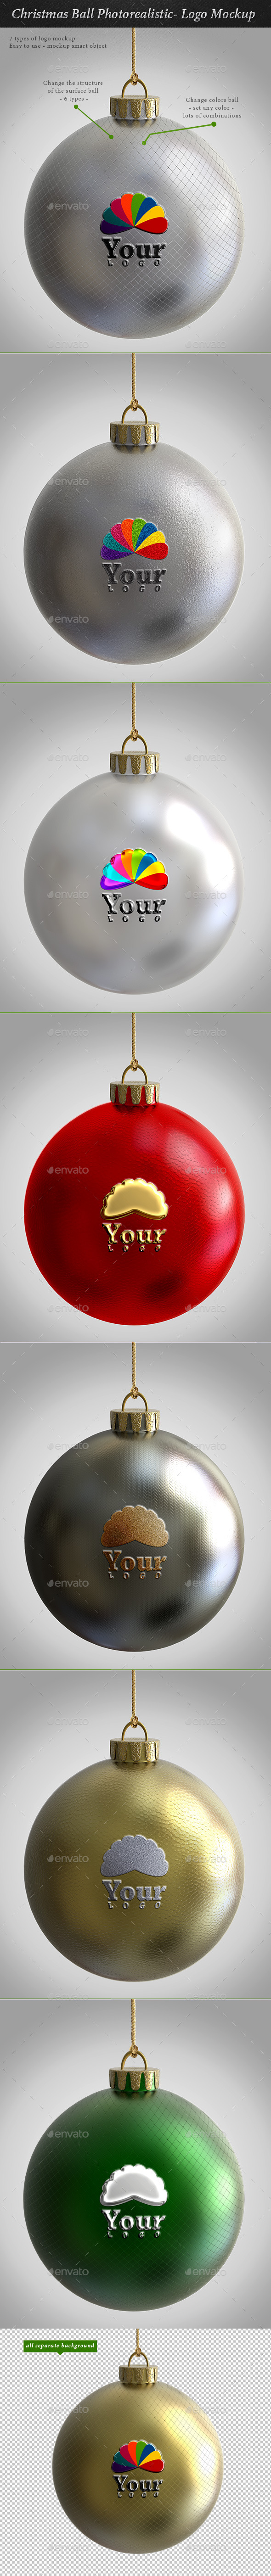 GraphicRiver Christmas Ball Photorealistic- Logo Mockup 9535375